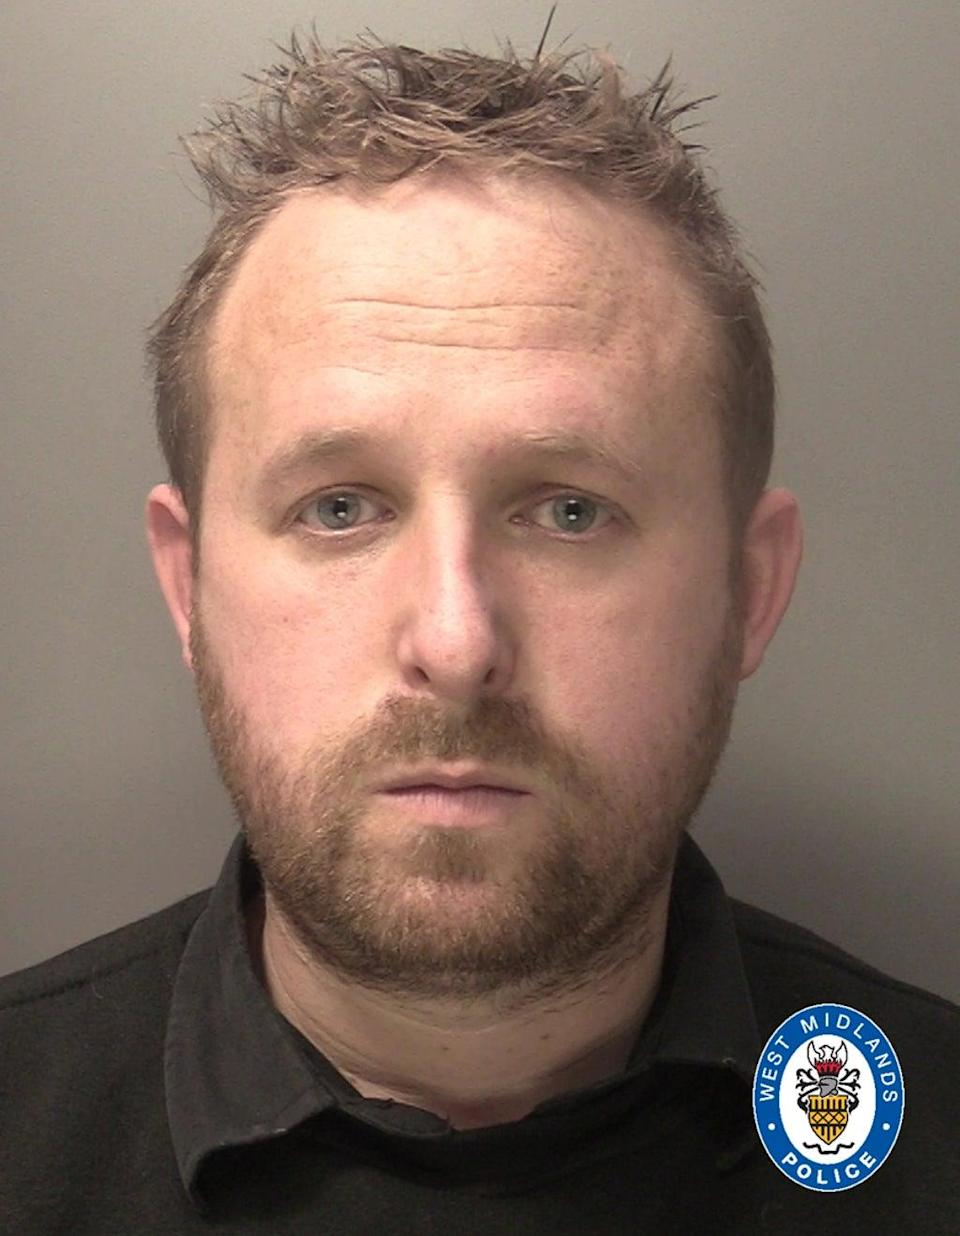 Richard Avery was jailed for his part in the crime (West Midlands Police/PA) (PA Media)